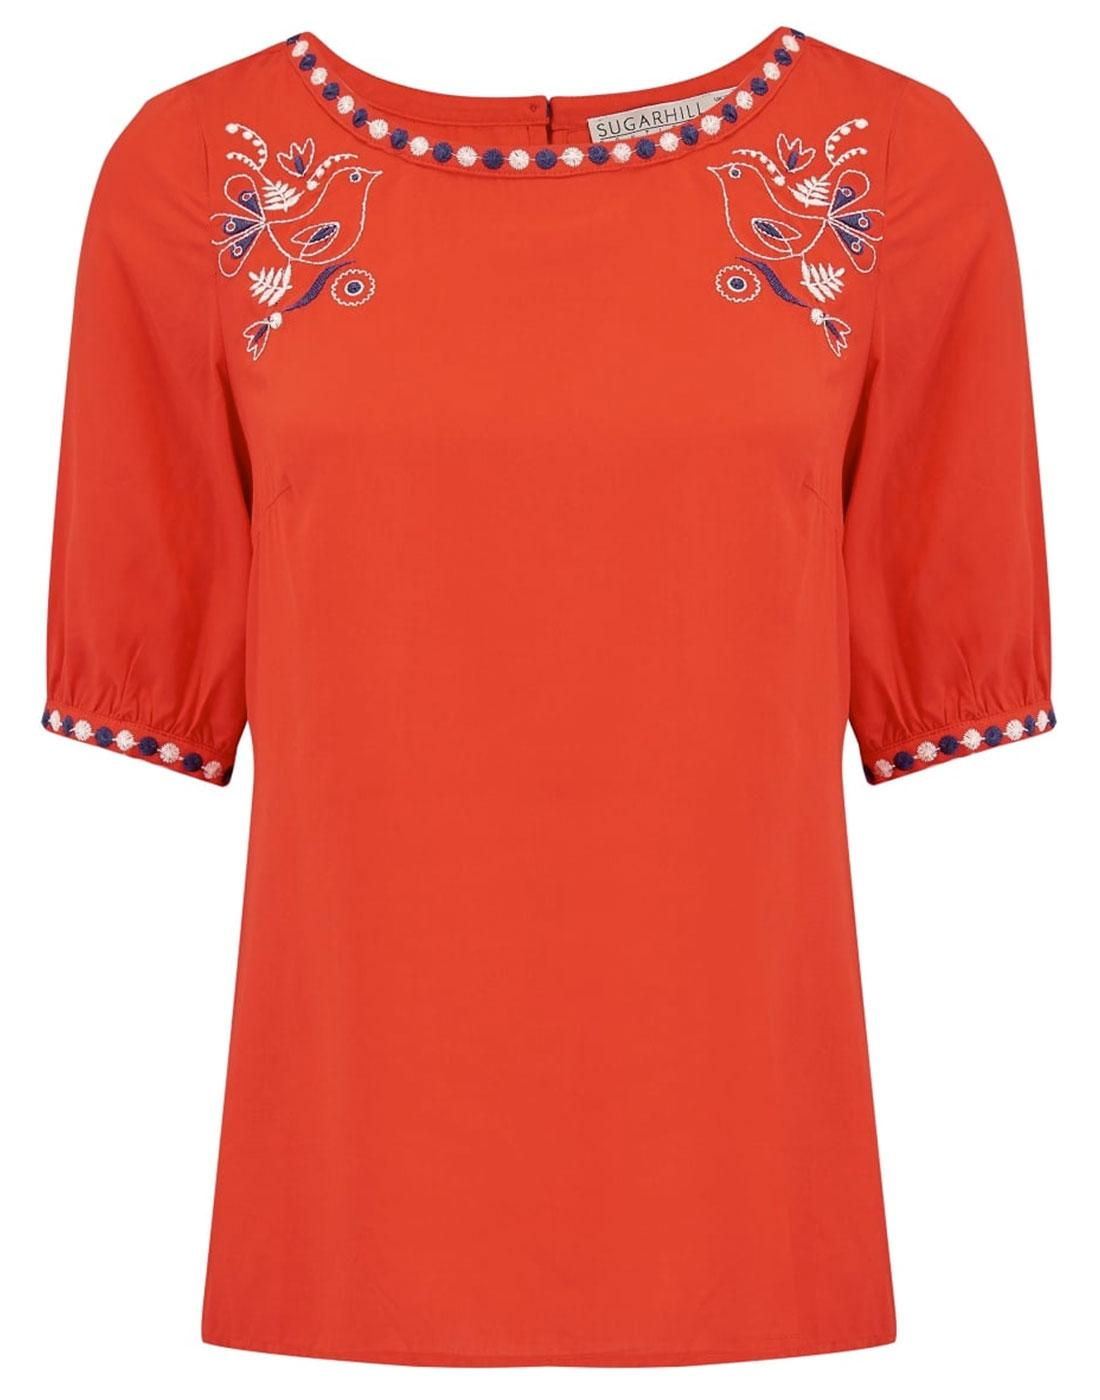 Folk SUGARHILL BOUTIQUE Retro Boho Summer Top